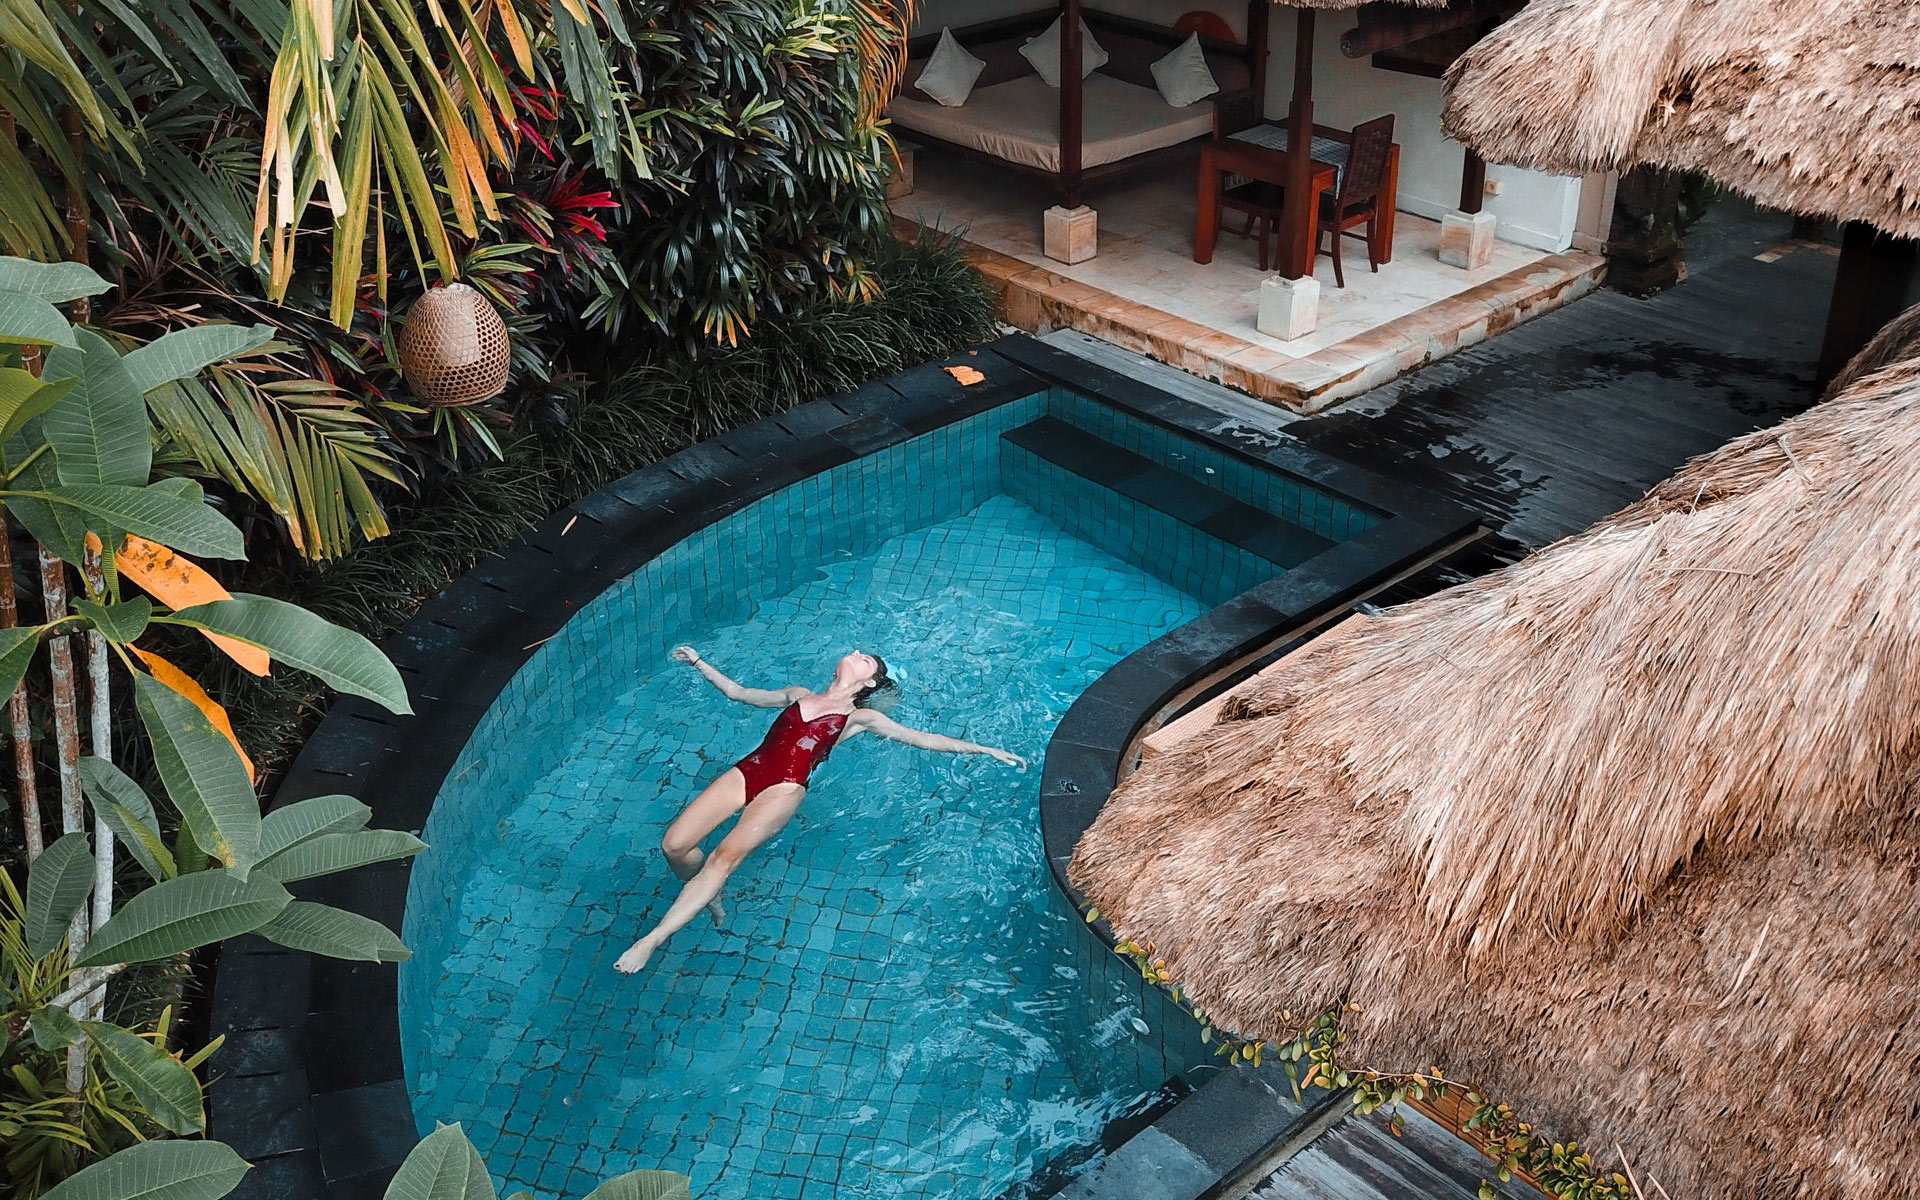 A woman swimming in a luxurious tropical pool.